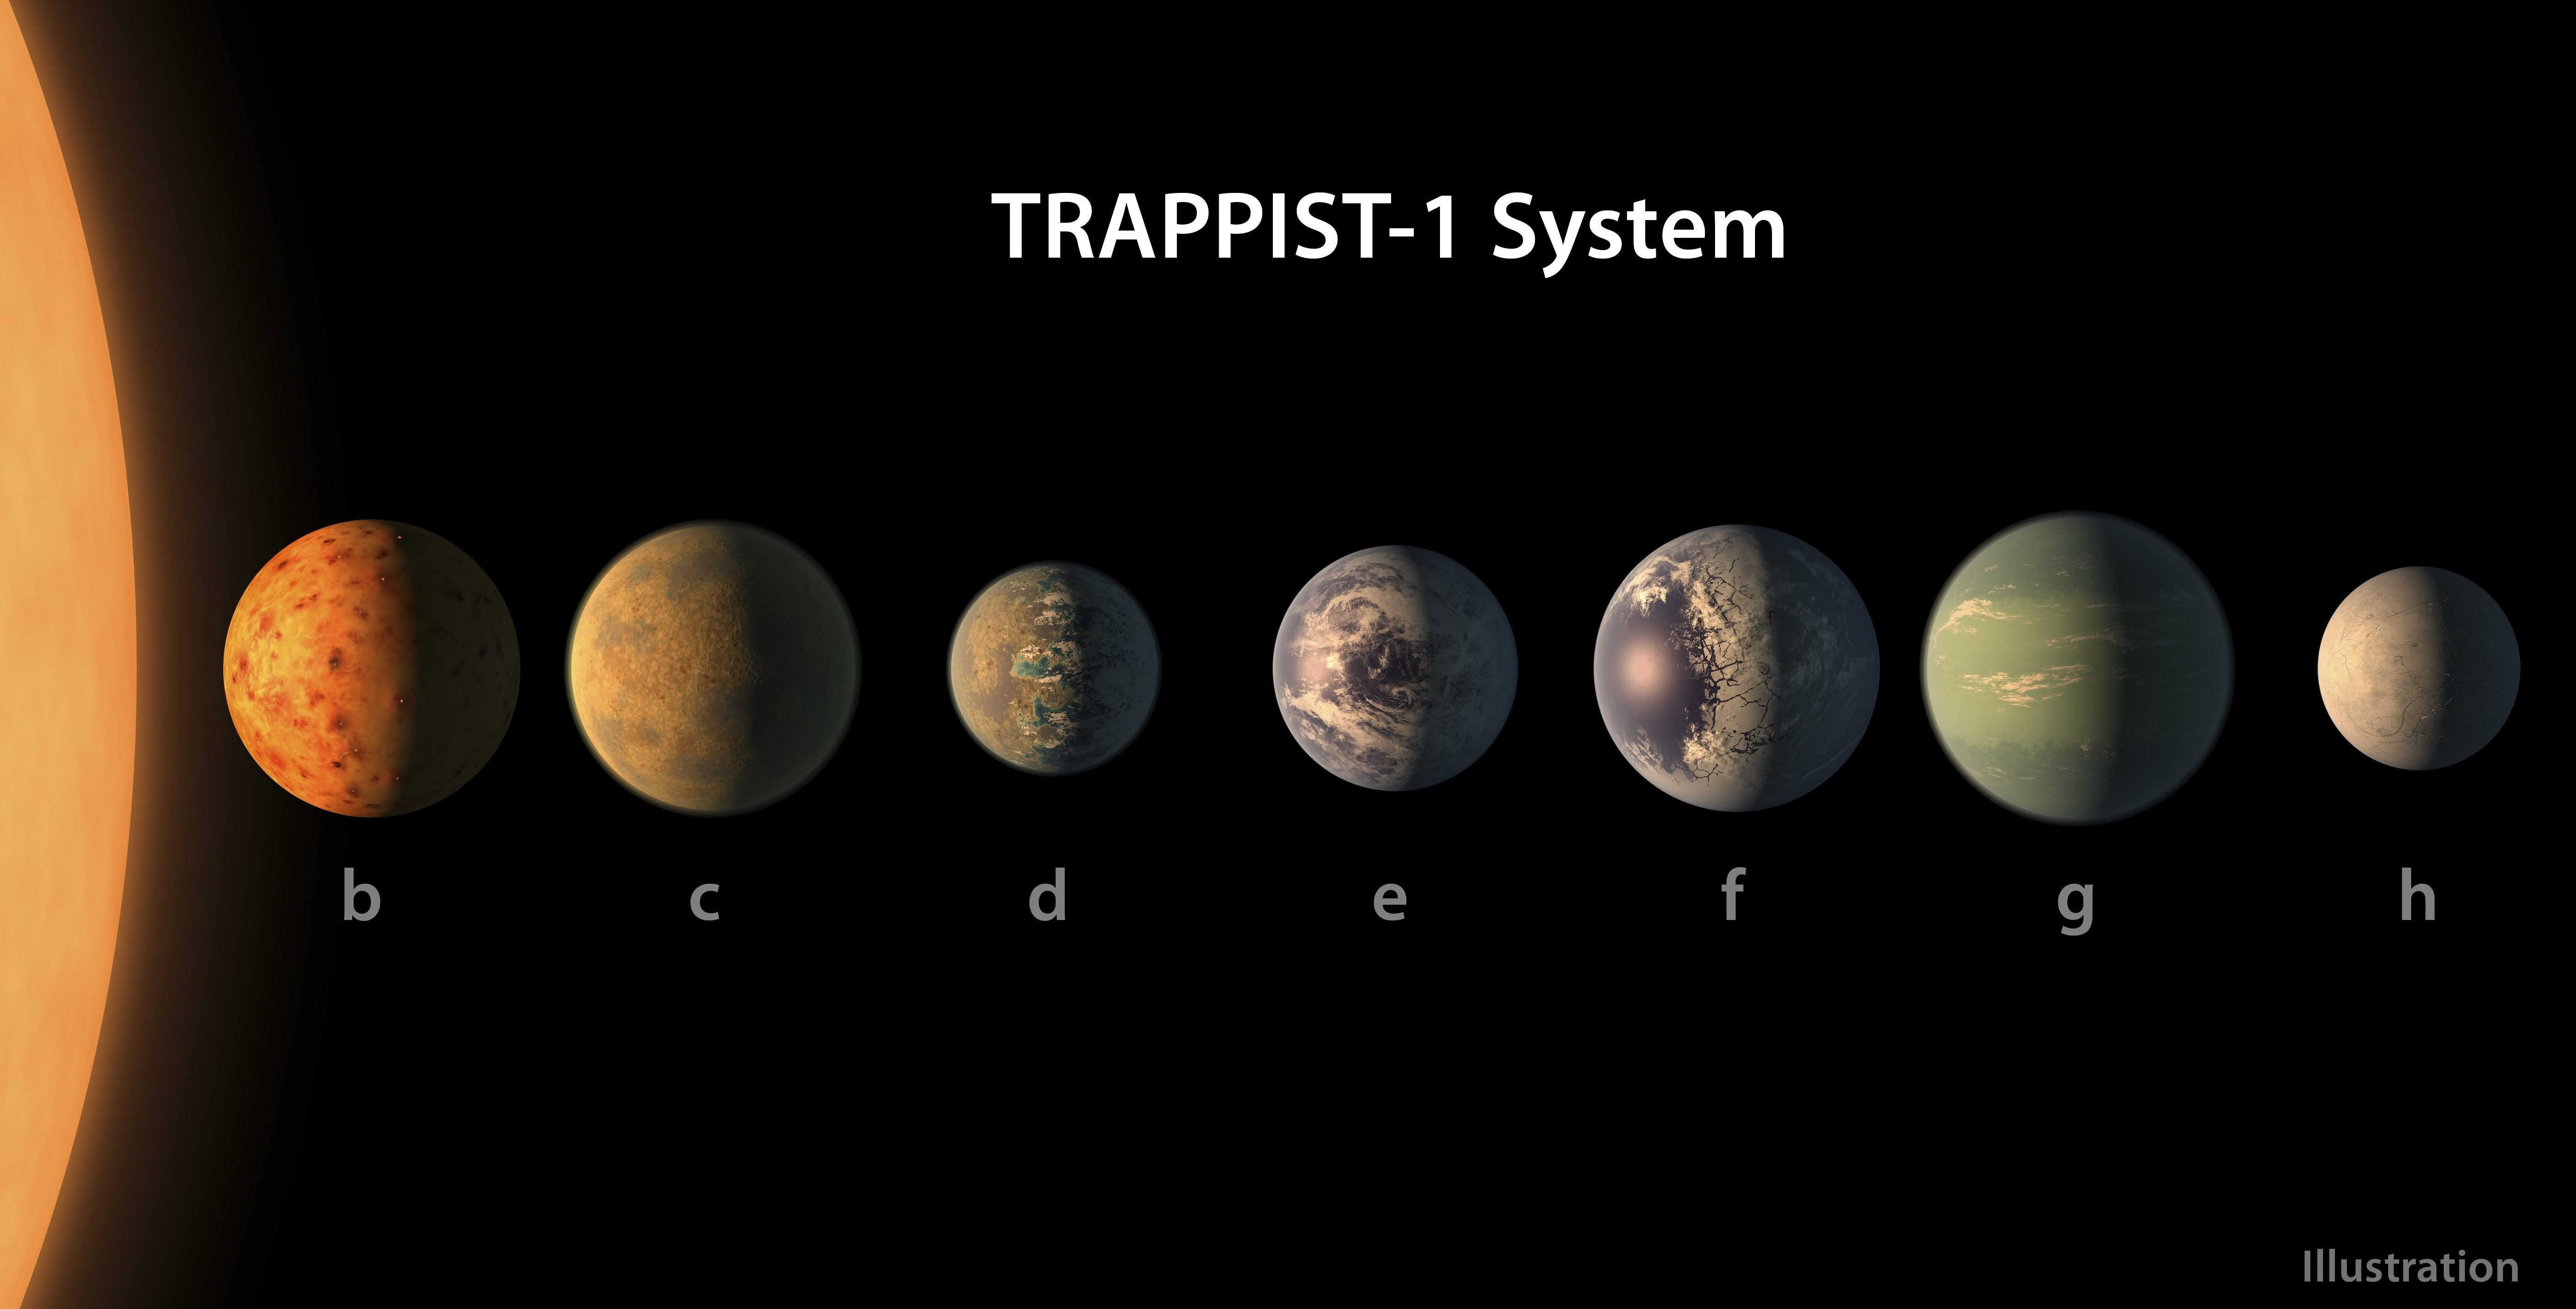 An artist's concept of what the TRAPPIST-1 planetary system may look like, based on available data about the planets' diameters, masses and distances from the host star. Photo: EPA/NASA